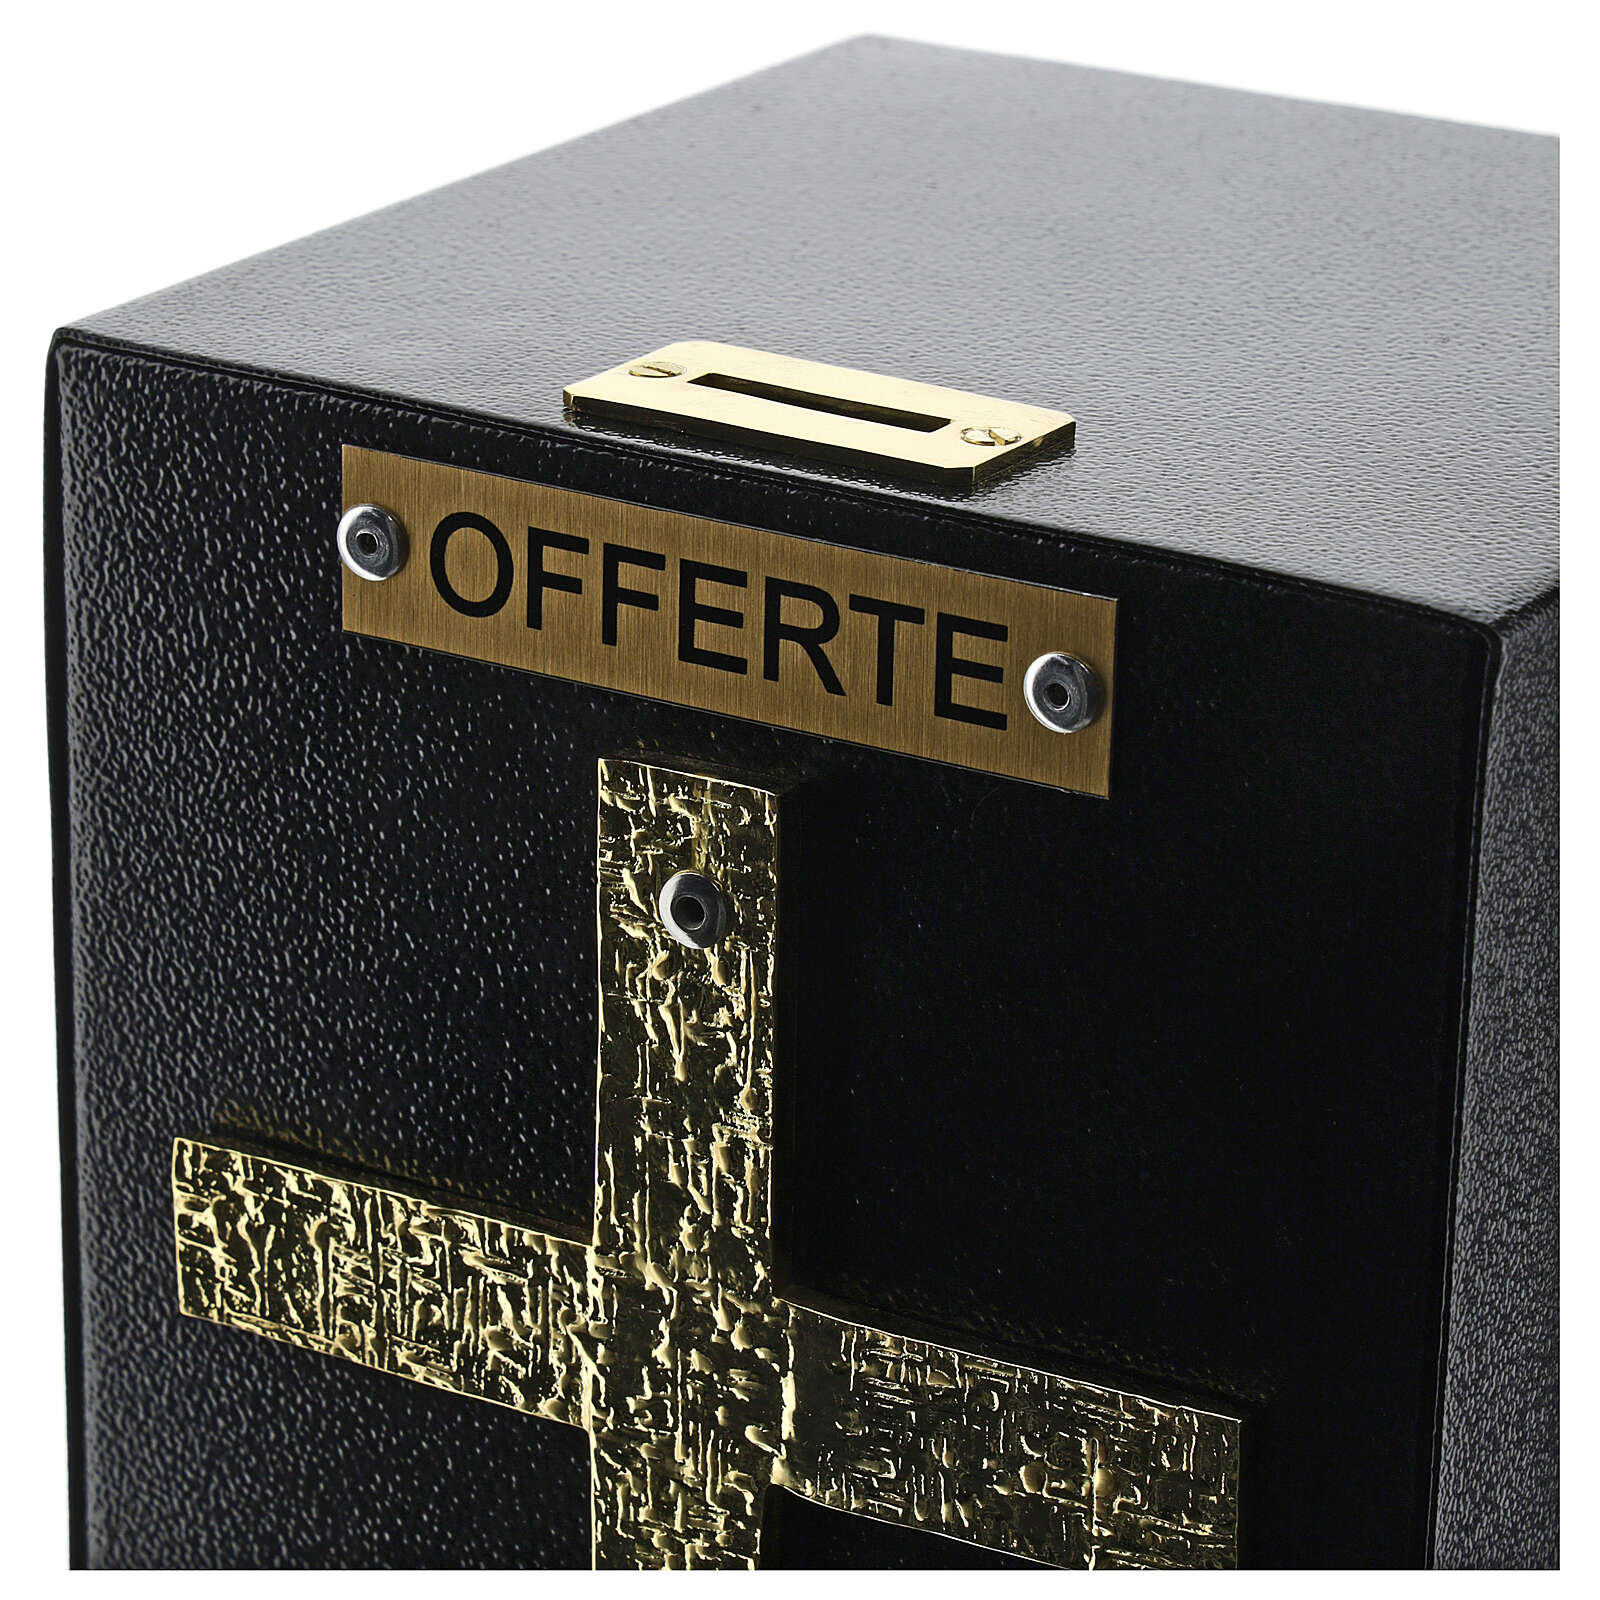 Standing collection box bronze finish with portable safe 4